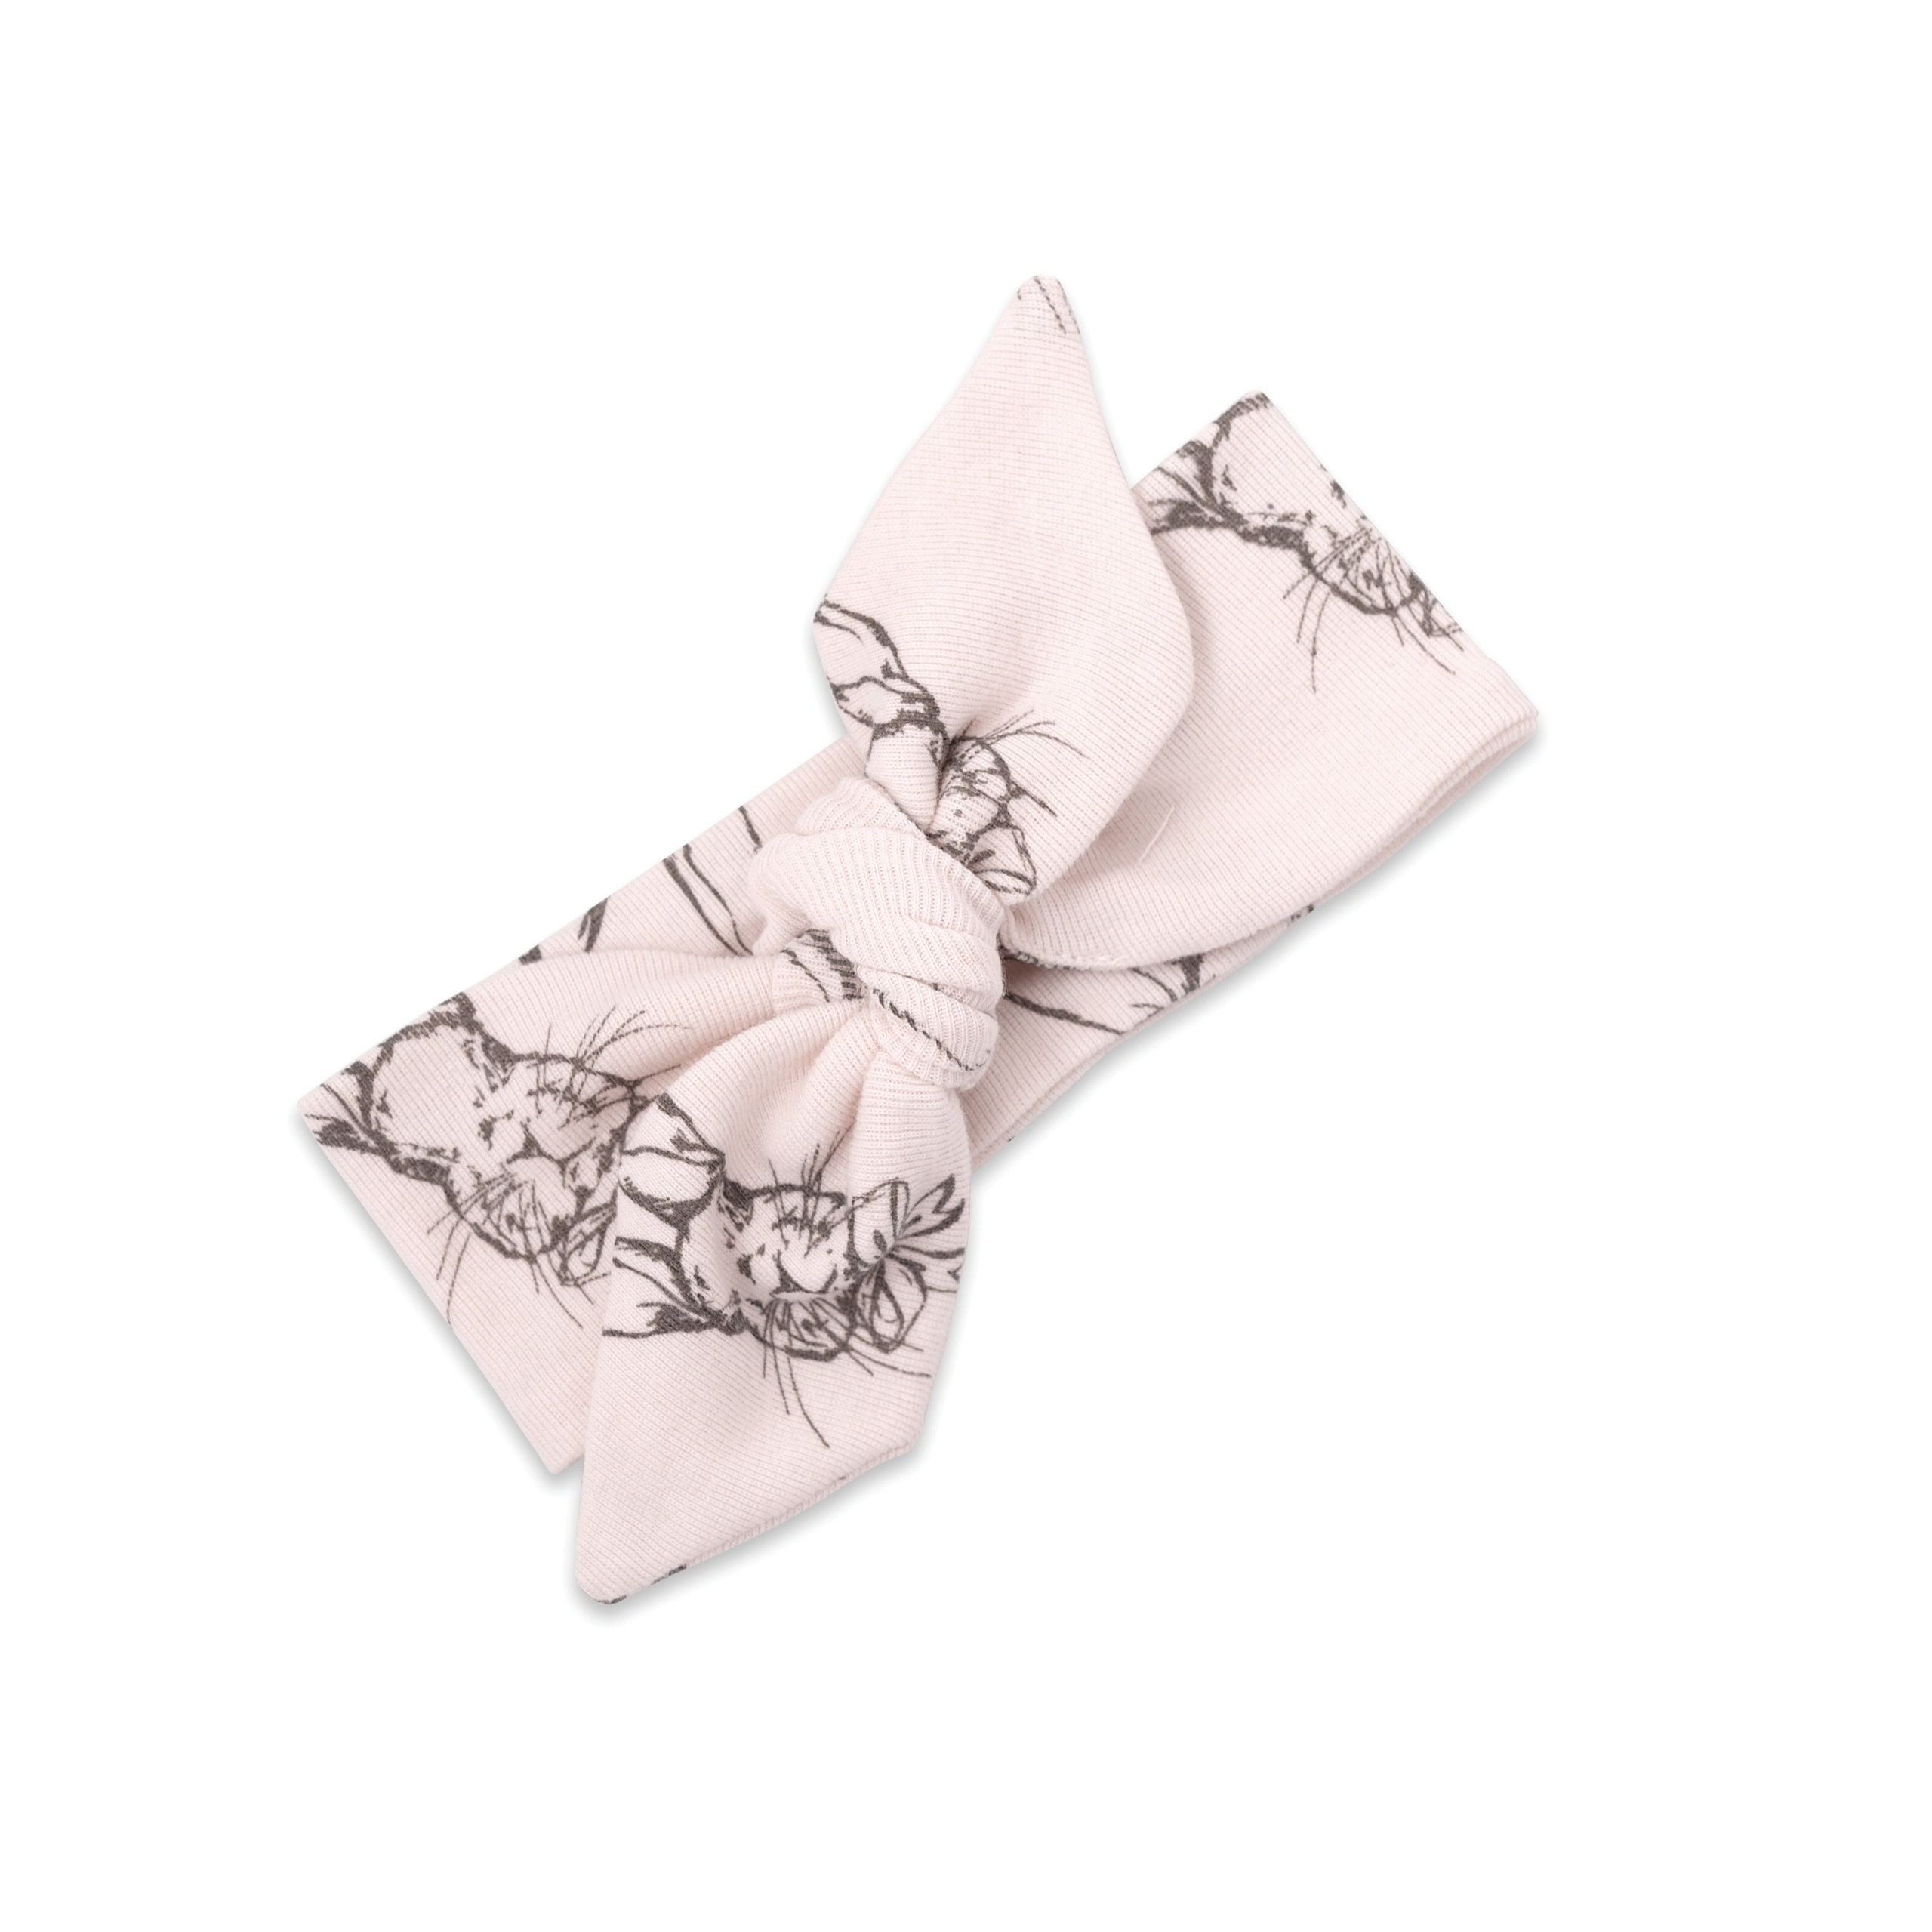 WHOLESALE BABY CLOTHES Easter Baby Girl Bunny Headband ... 243e72da9f2